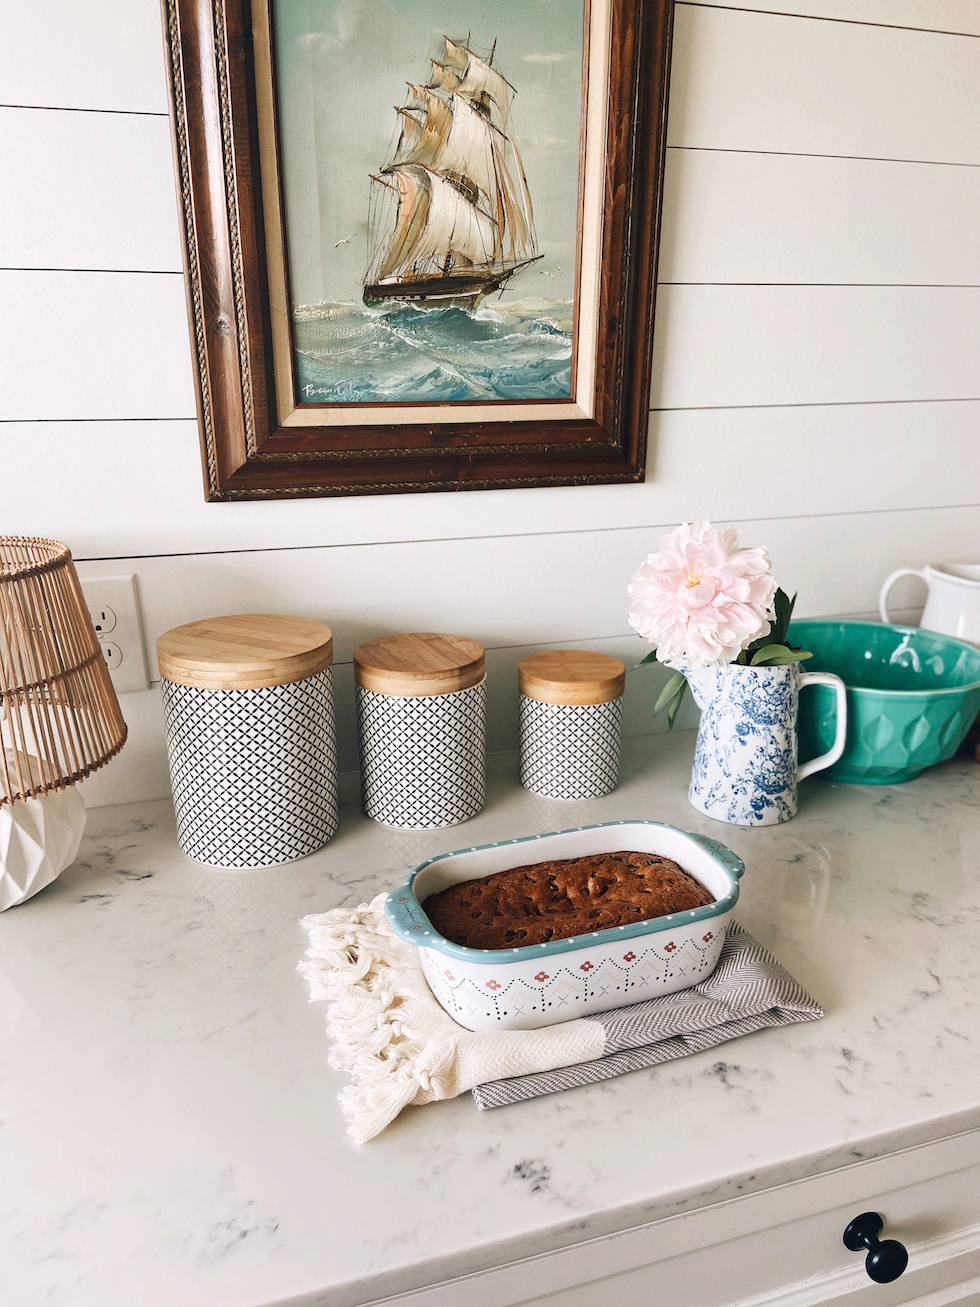 Best gluten-free banana bread recipe (with chocolate chips + nuts)